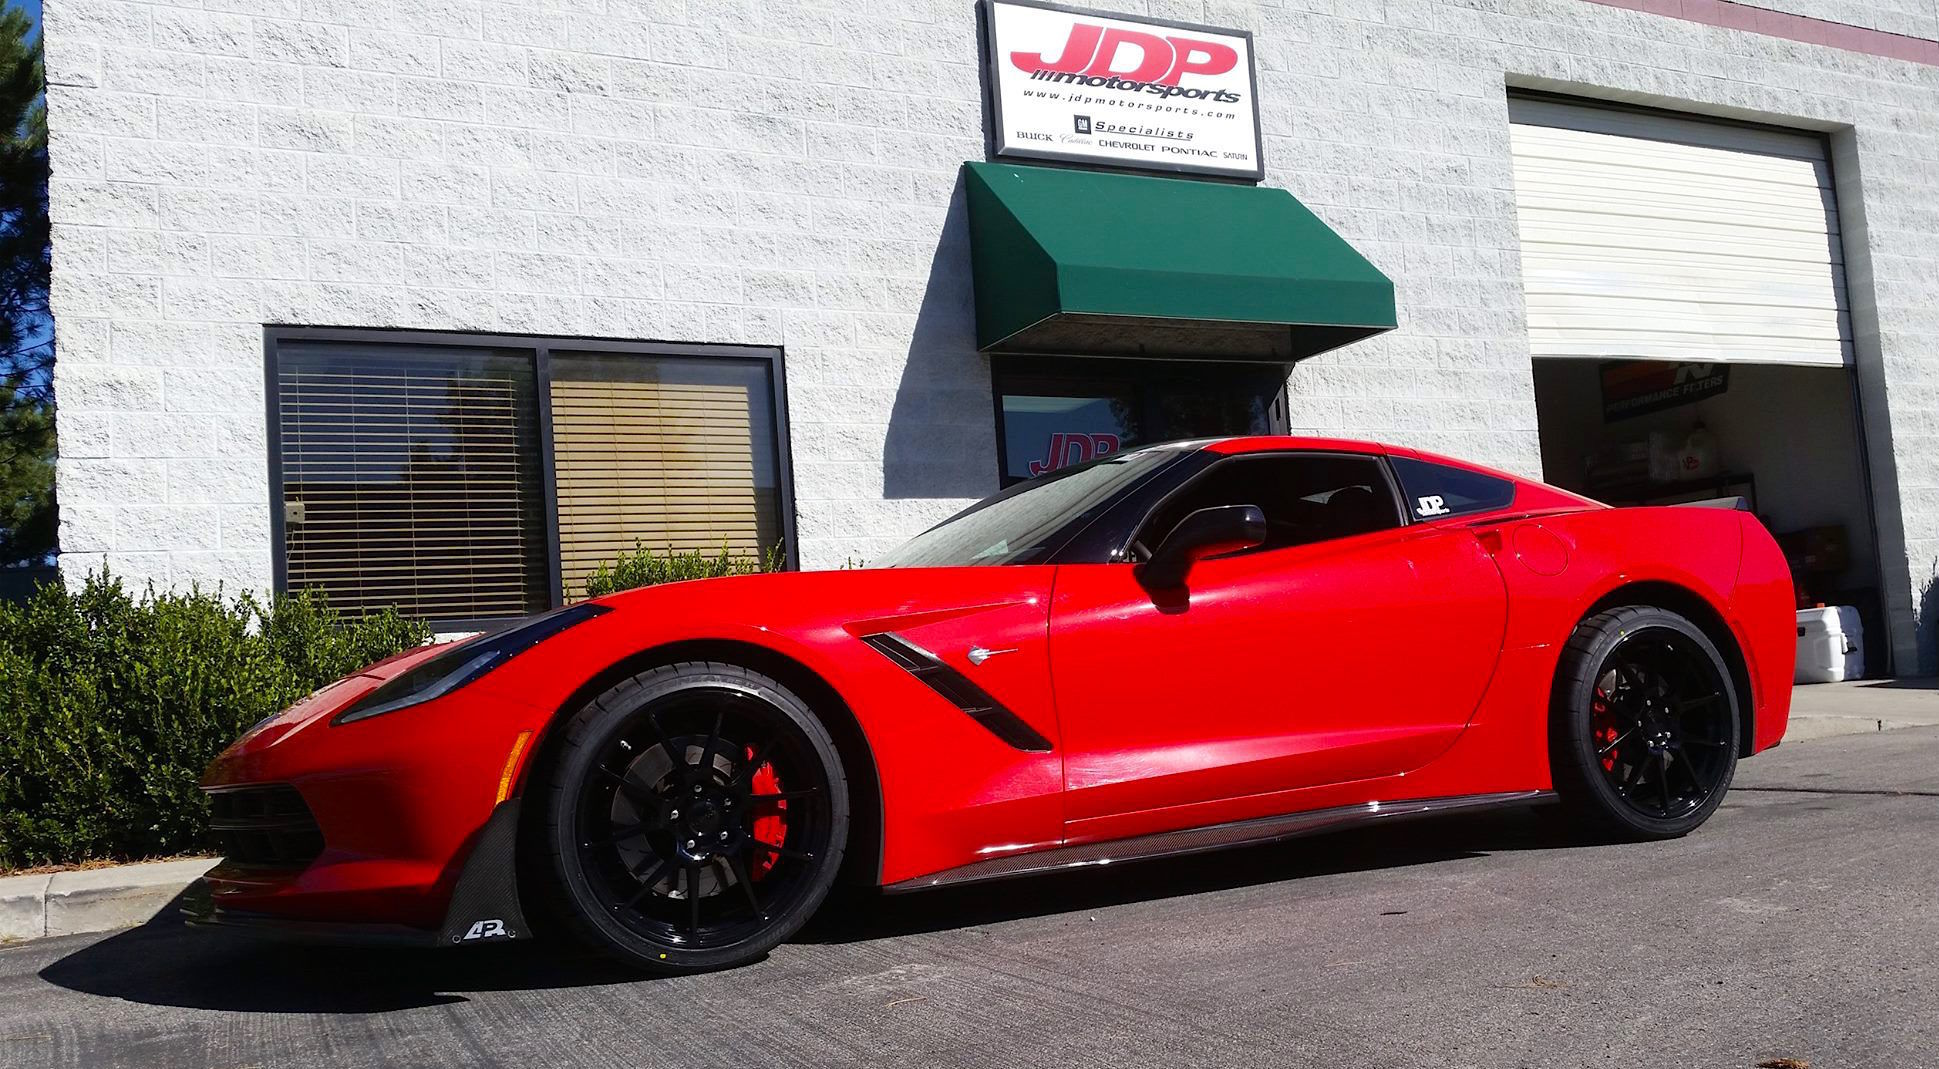 2014 Chevrolet Corvette Stingray | Corvette on Forgeline GA1R Wheels